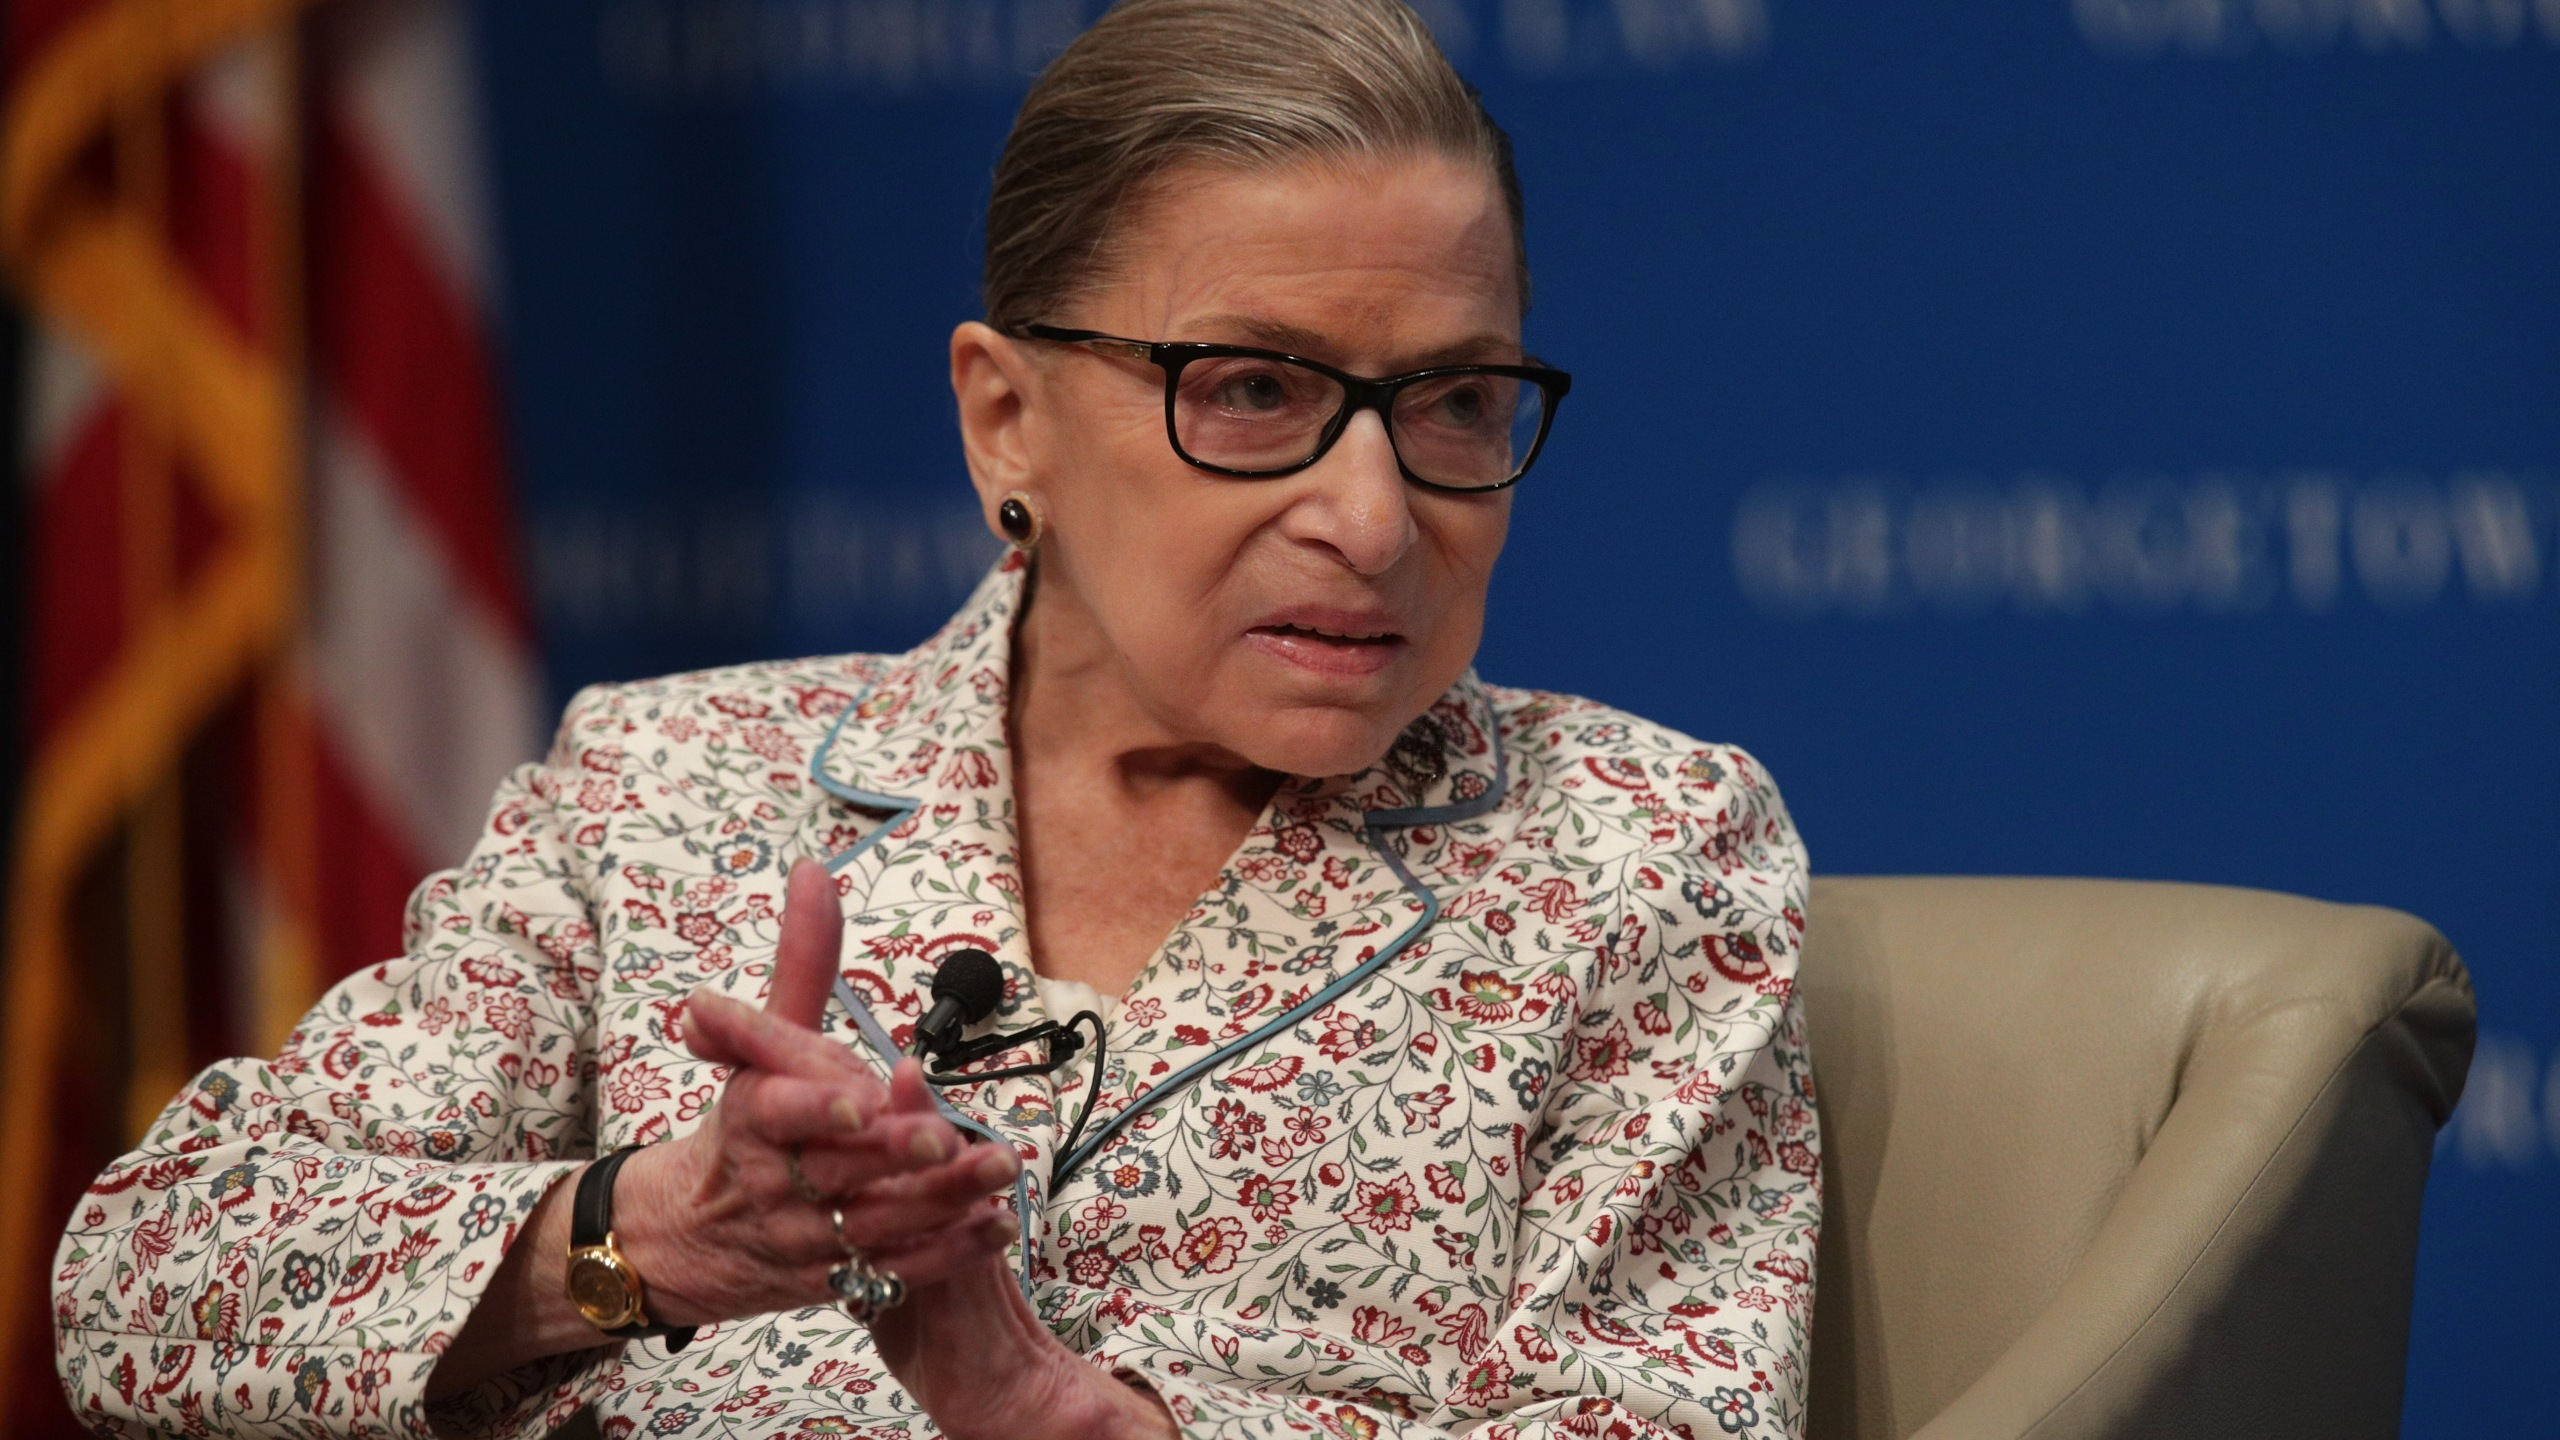 Supreme Court Associate Justice Ruth Bader Ginsburg participates in a discussion at Georgetown University Law Center in Washington on July 2, 2019. (Credit: Alex Wong / Getty Images)